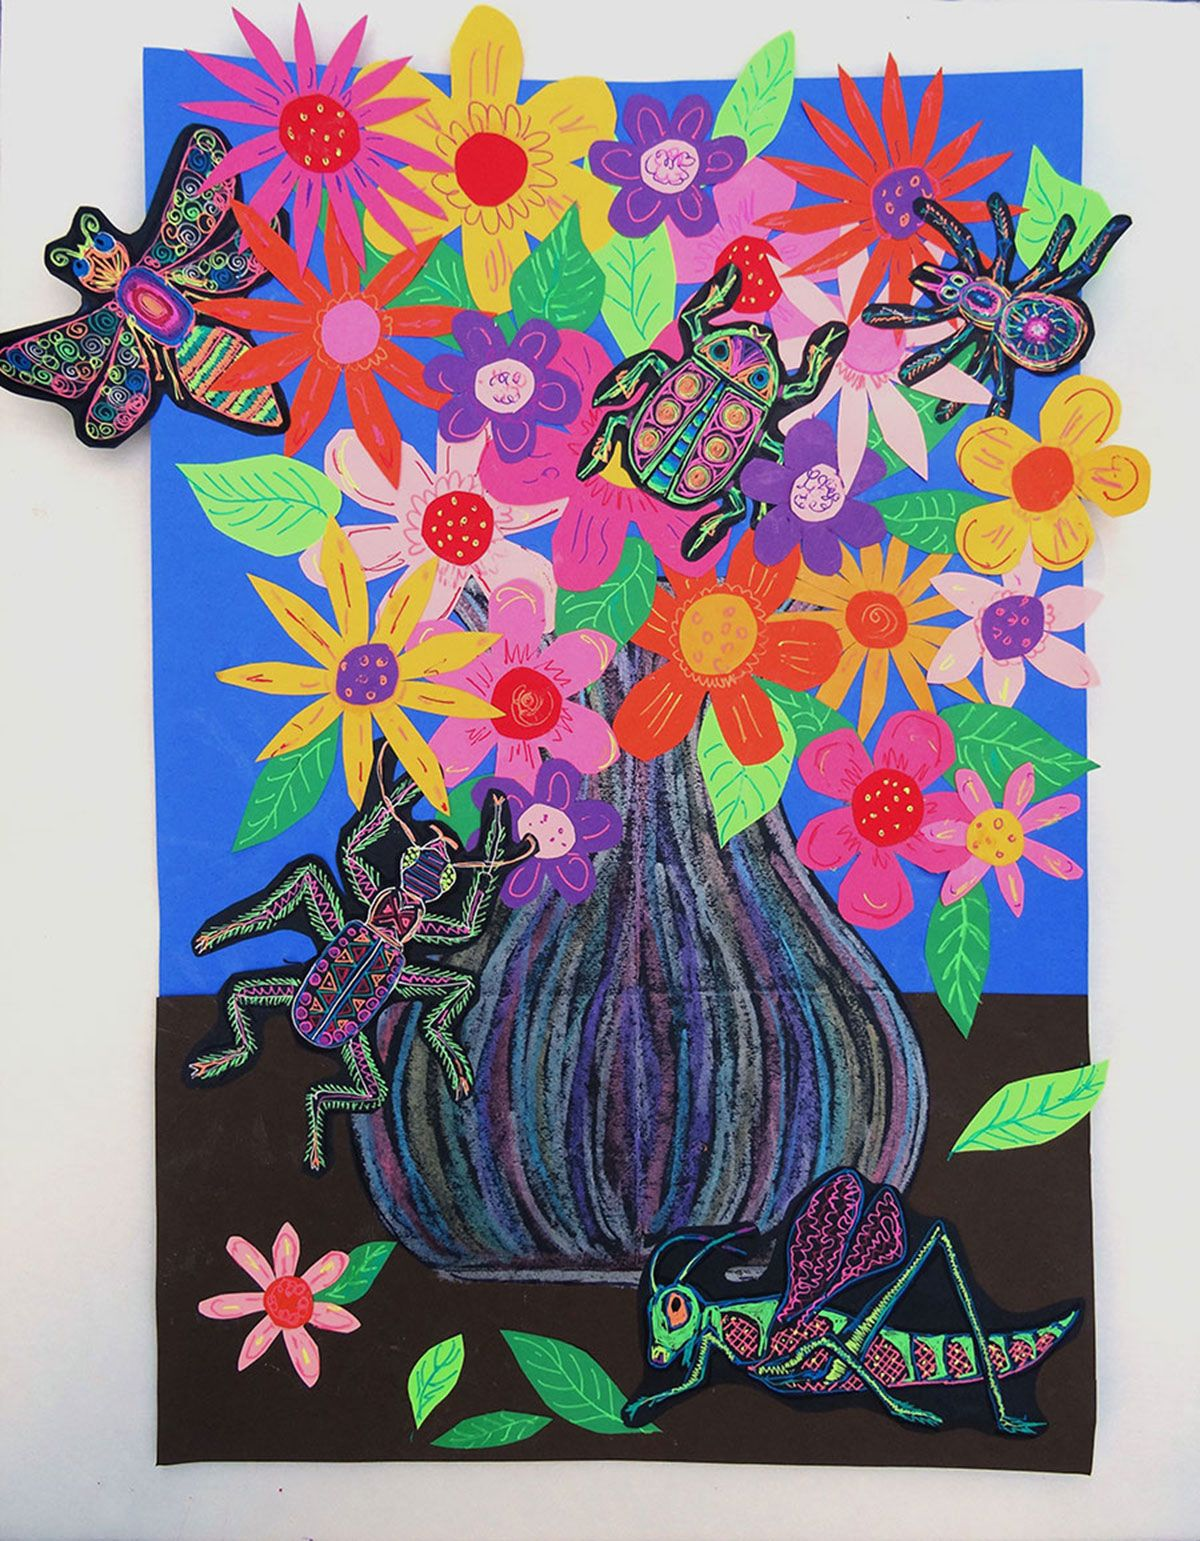 Create a Creepy-Crawly Floral Still Life Collage (Grades 3-